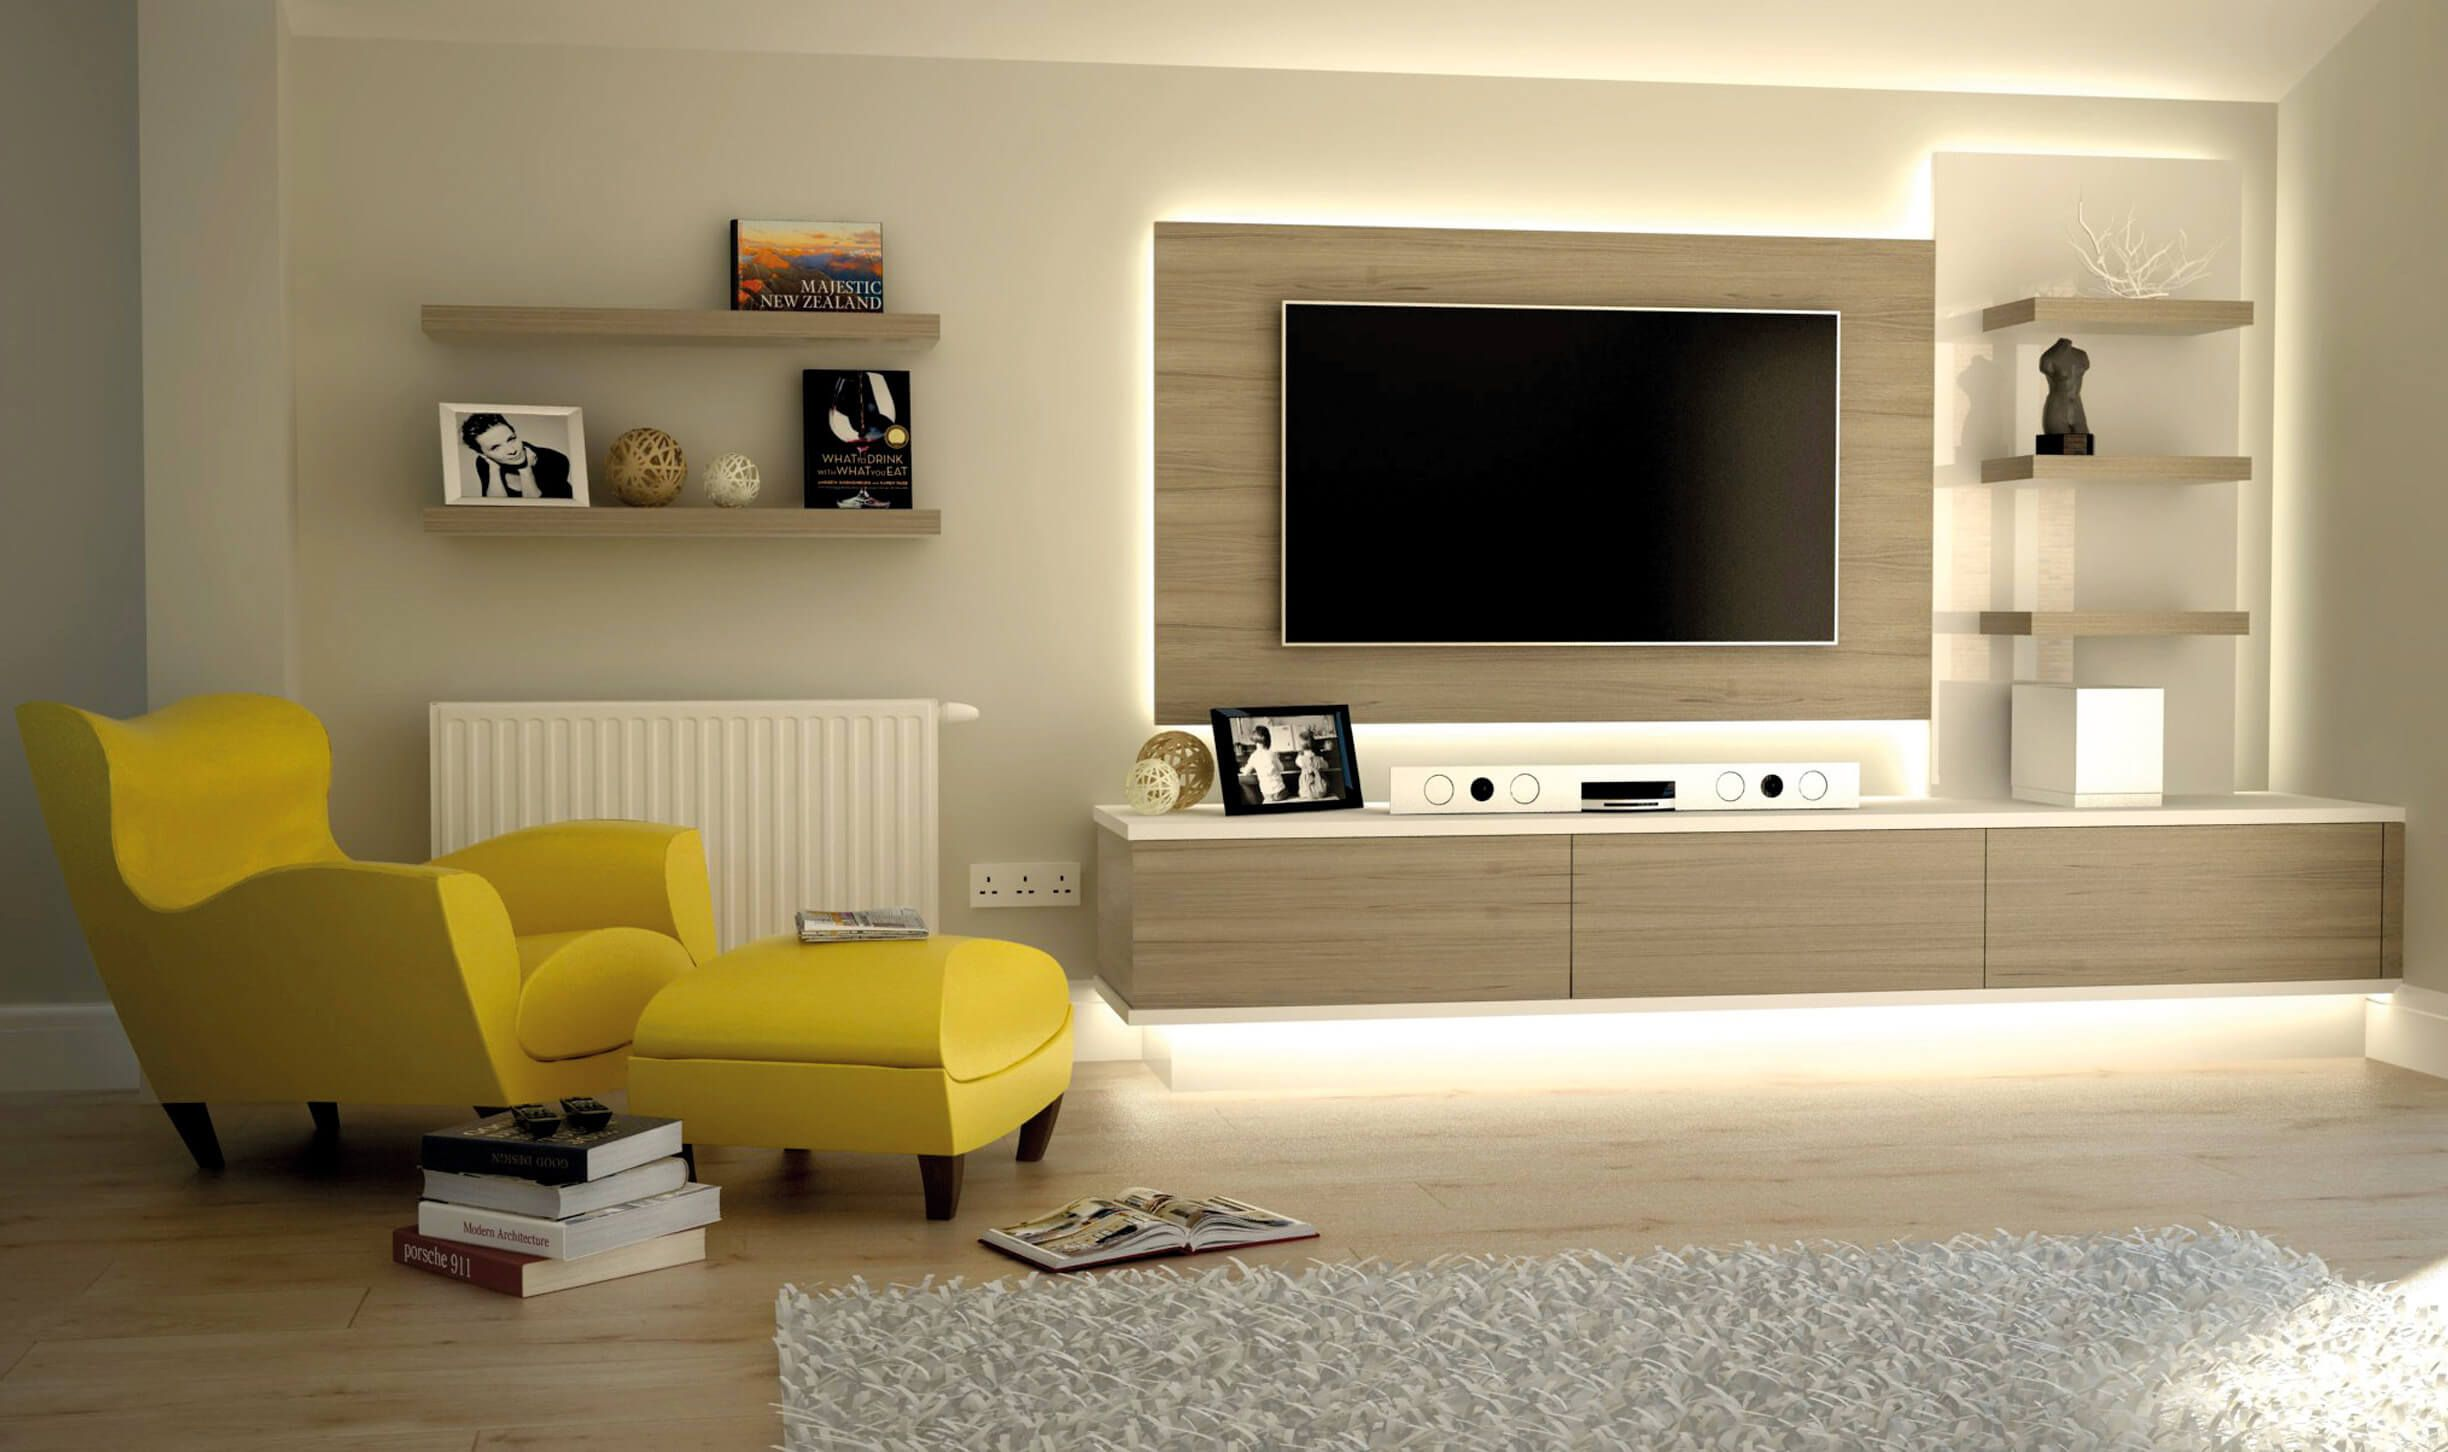 Bespoke tv cabinets bookcases and storage units for over 50 years our family and